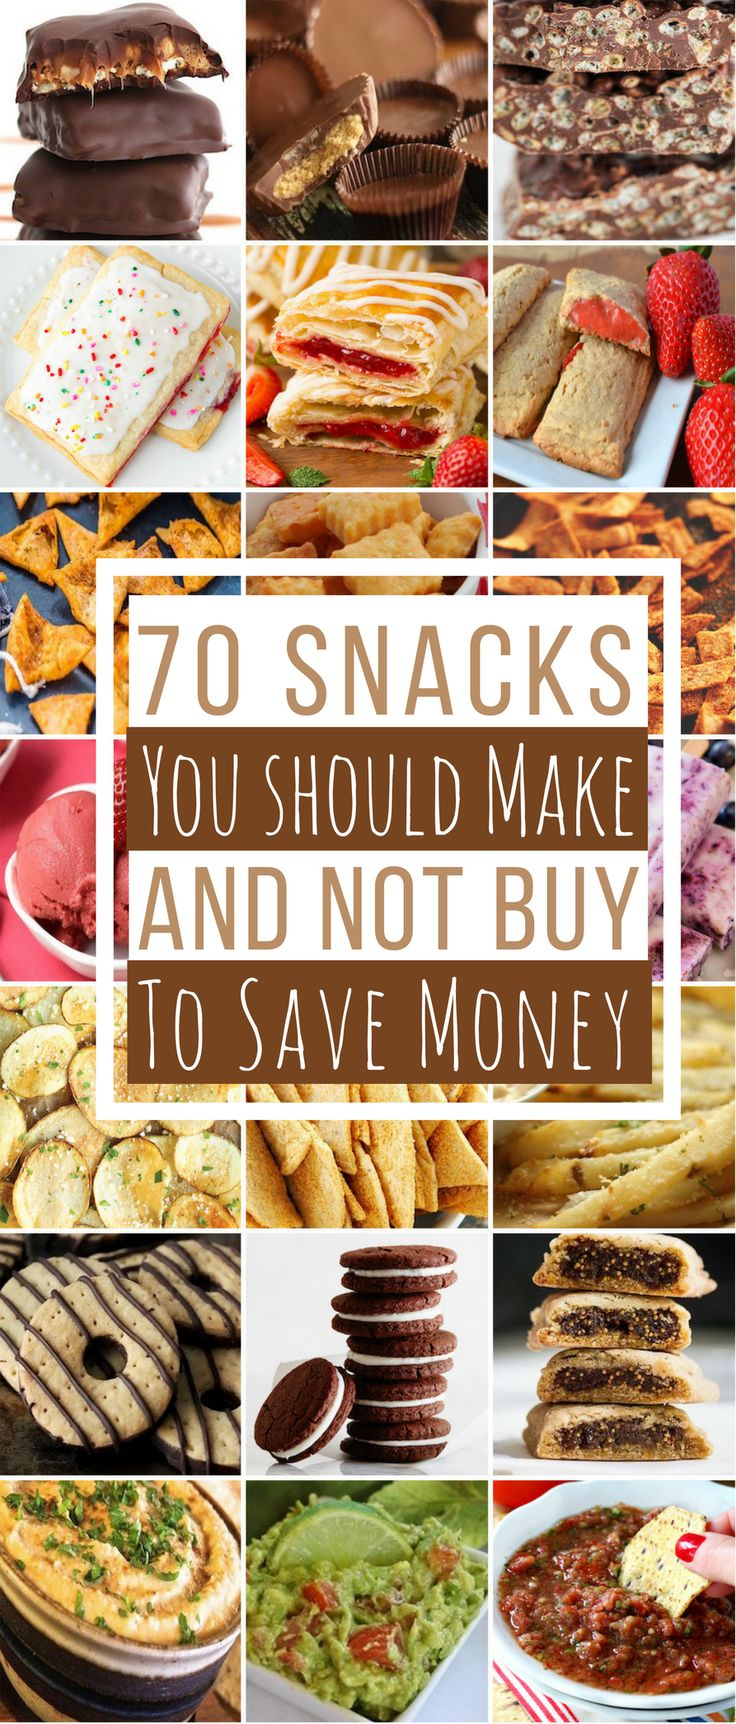 70 Snacks You Can Make Instead of Buying to Save Money